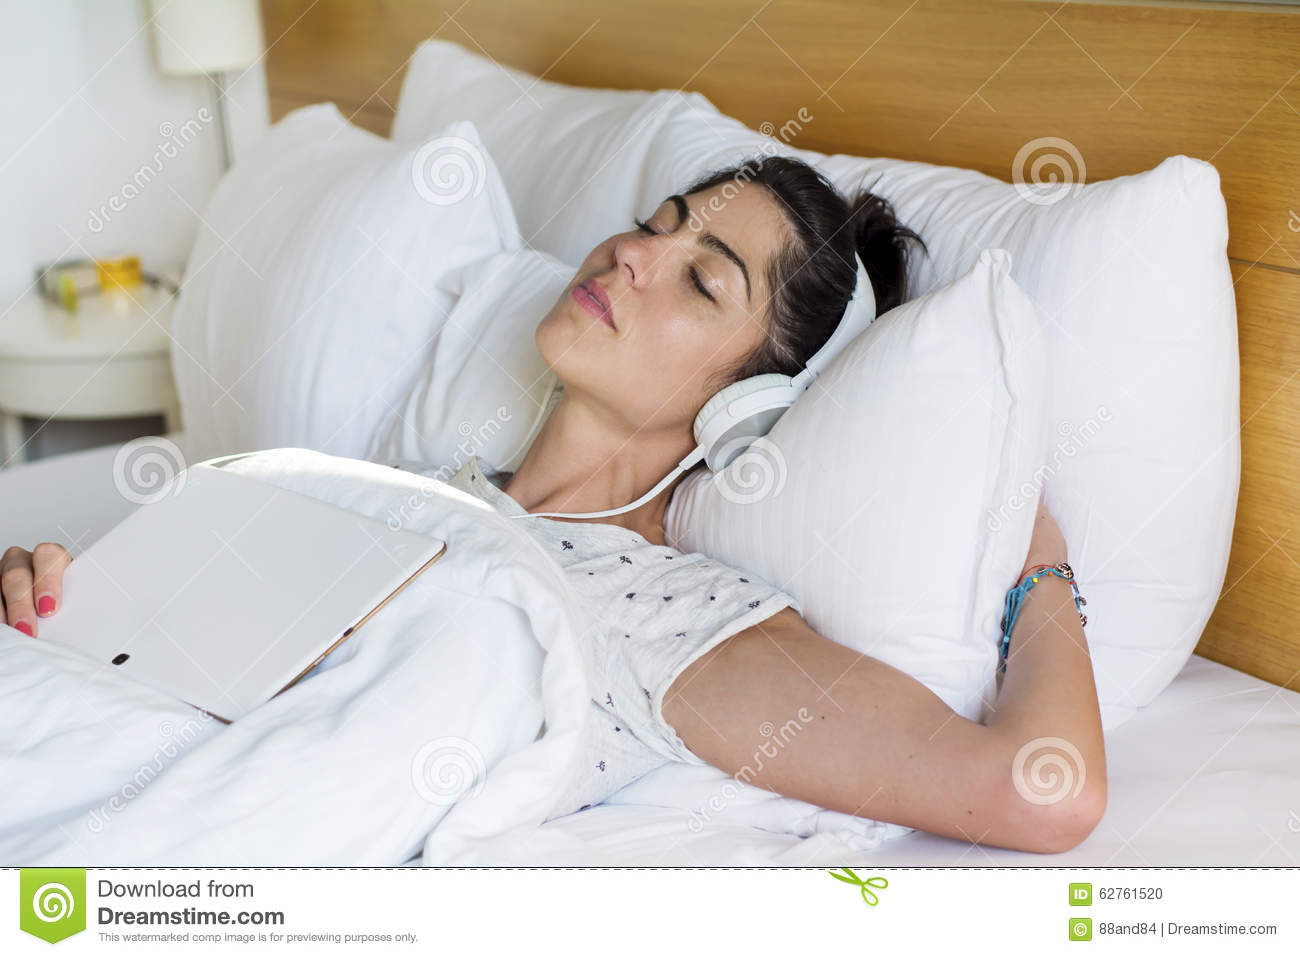 Young woman sleeping in bed listening music